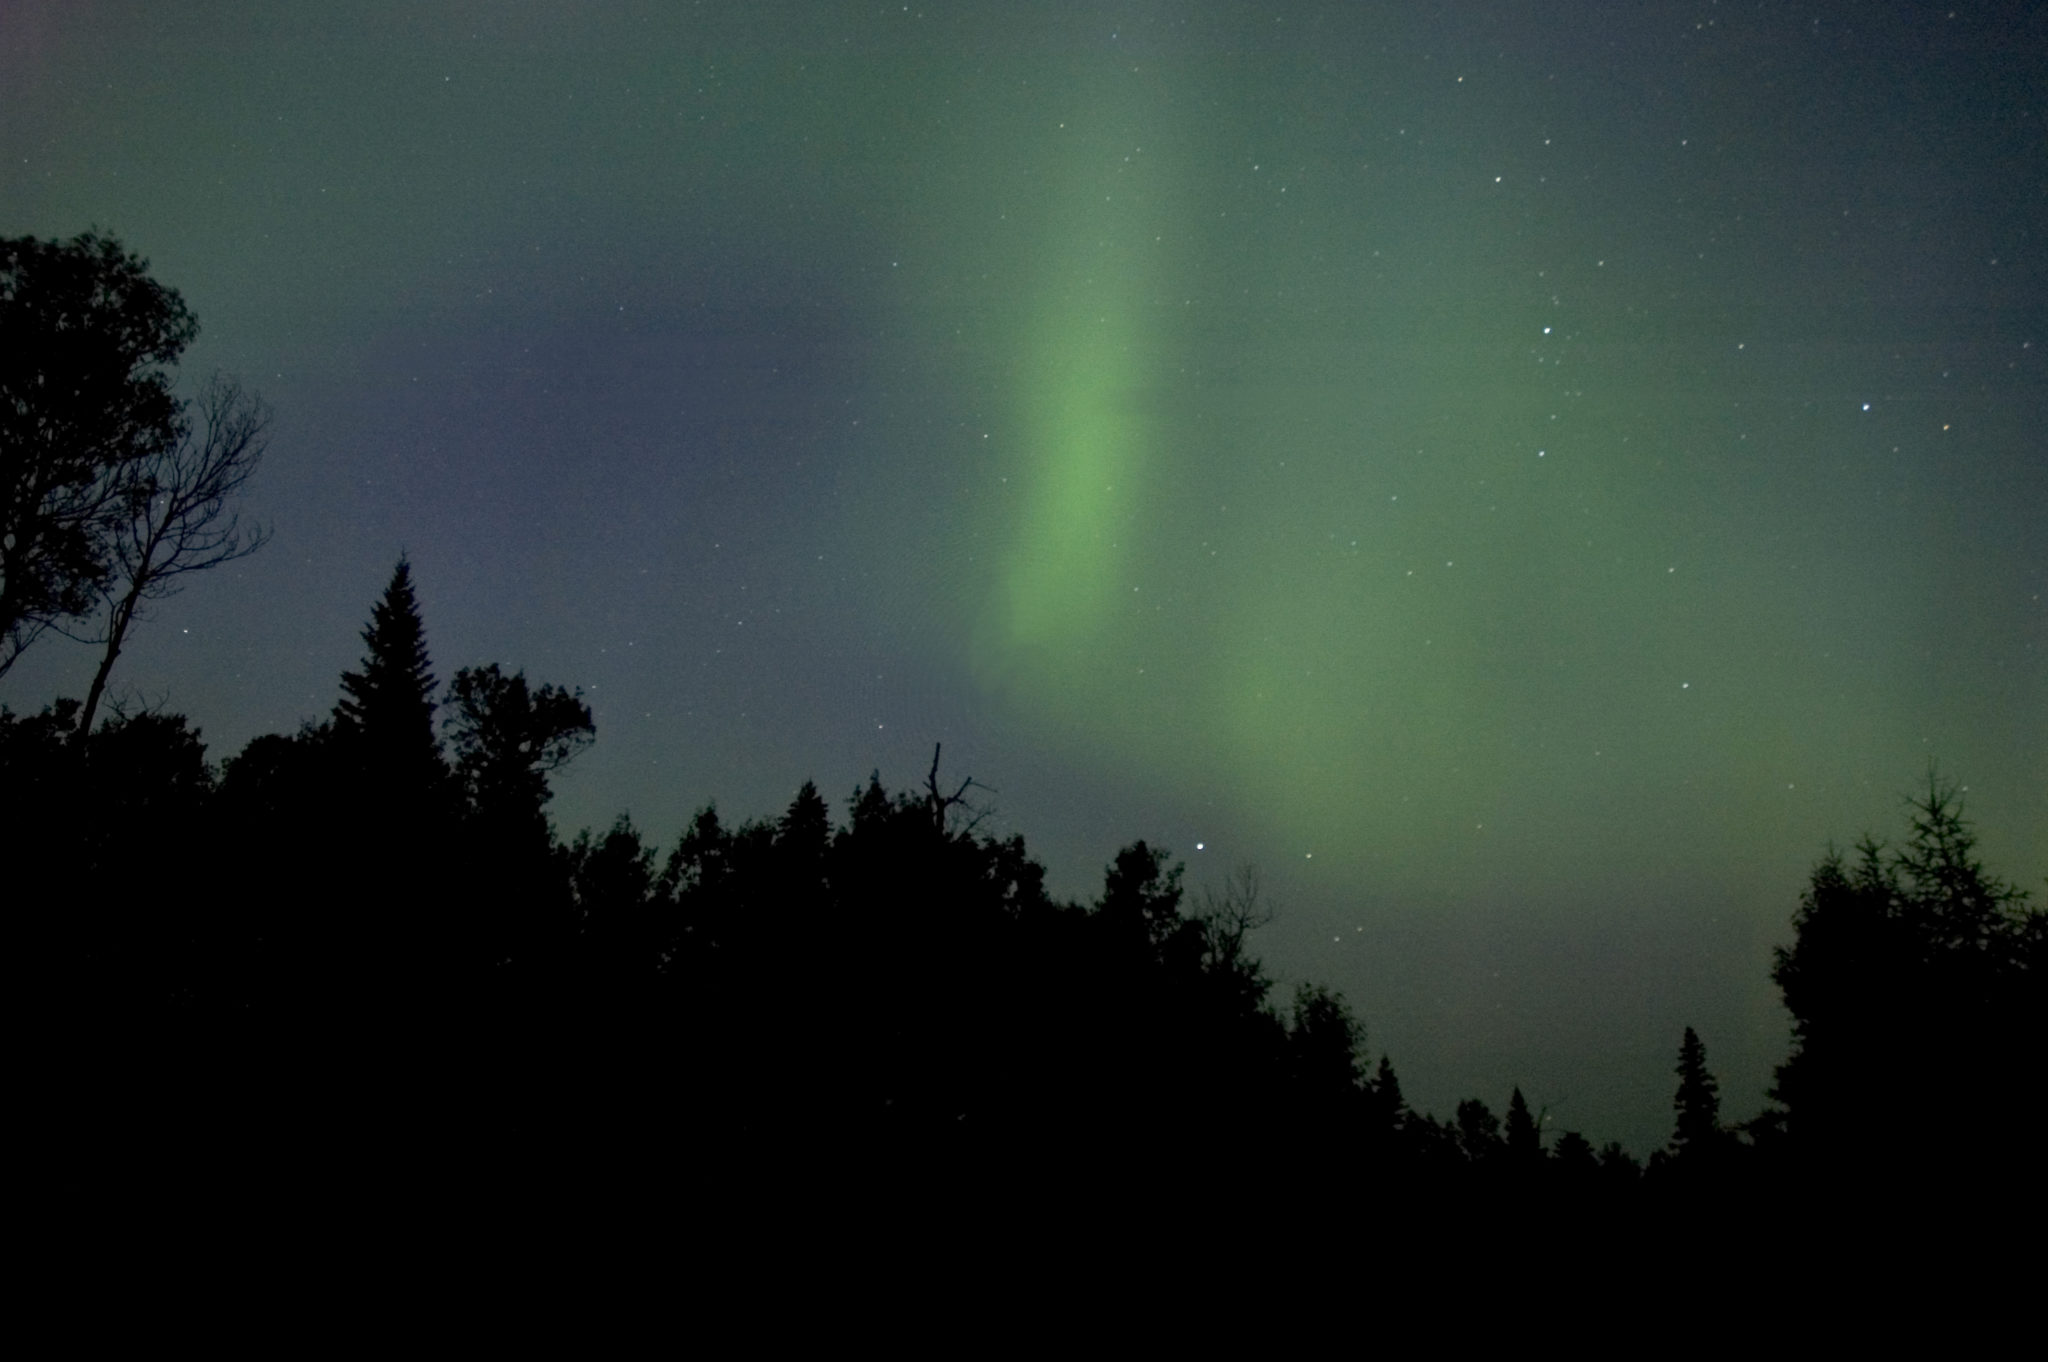 Aurora borealis boreal Ontario northern lights